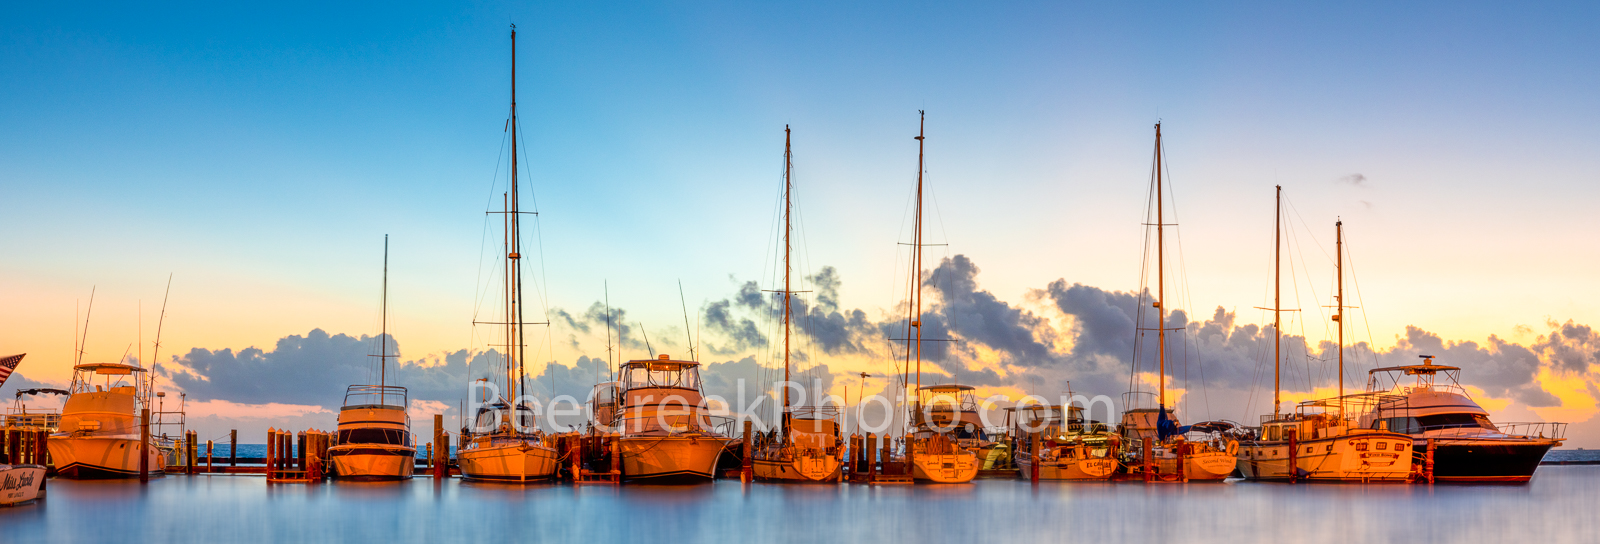 Colorful Dawn at Fulton Harbor Pano -  A colorful magic hour right at dawn before sunrise at the Fulton Harbor marina along the...